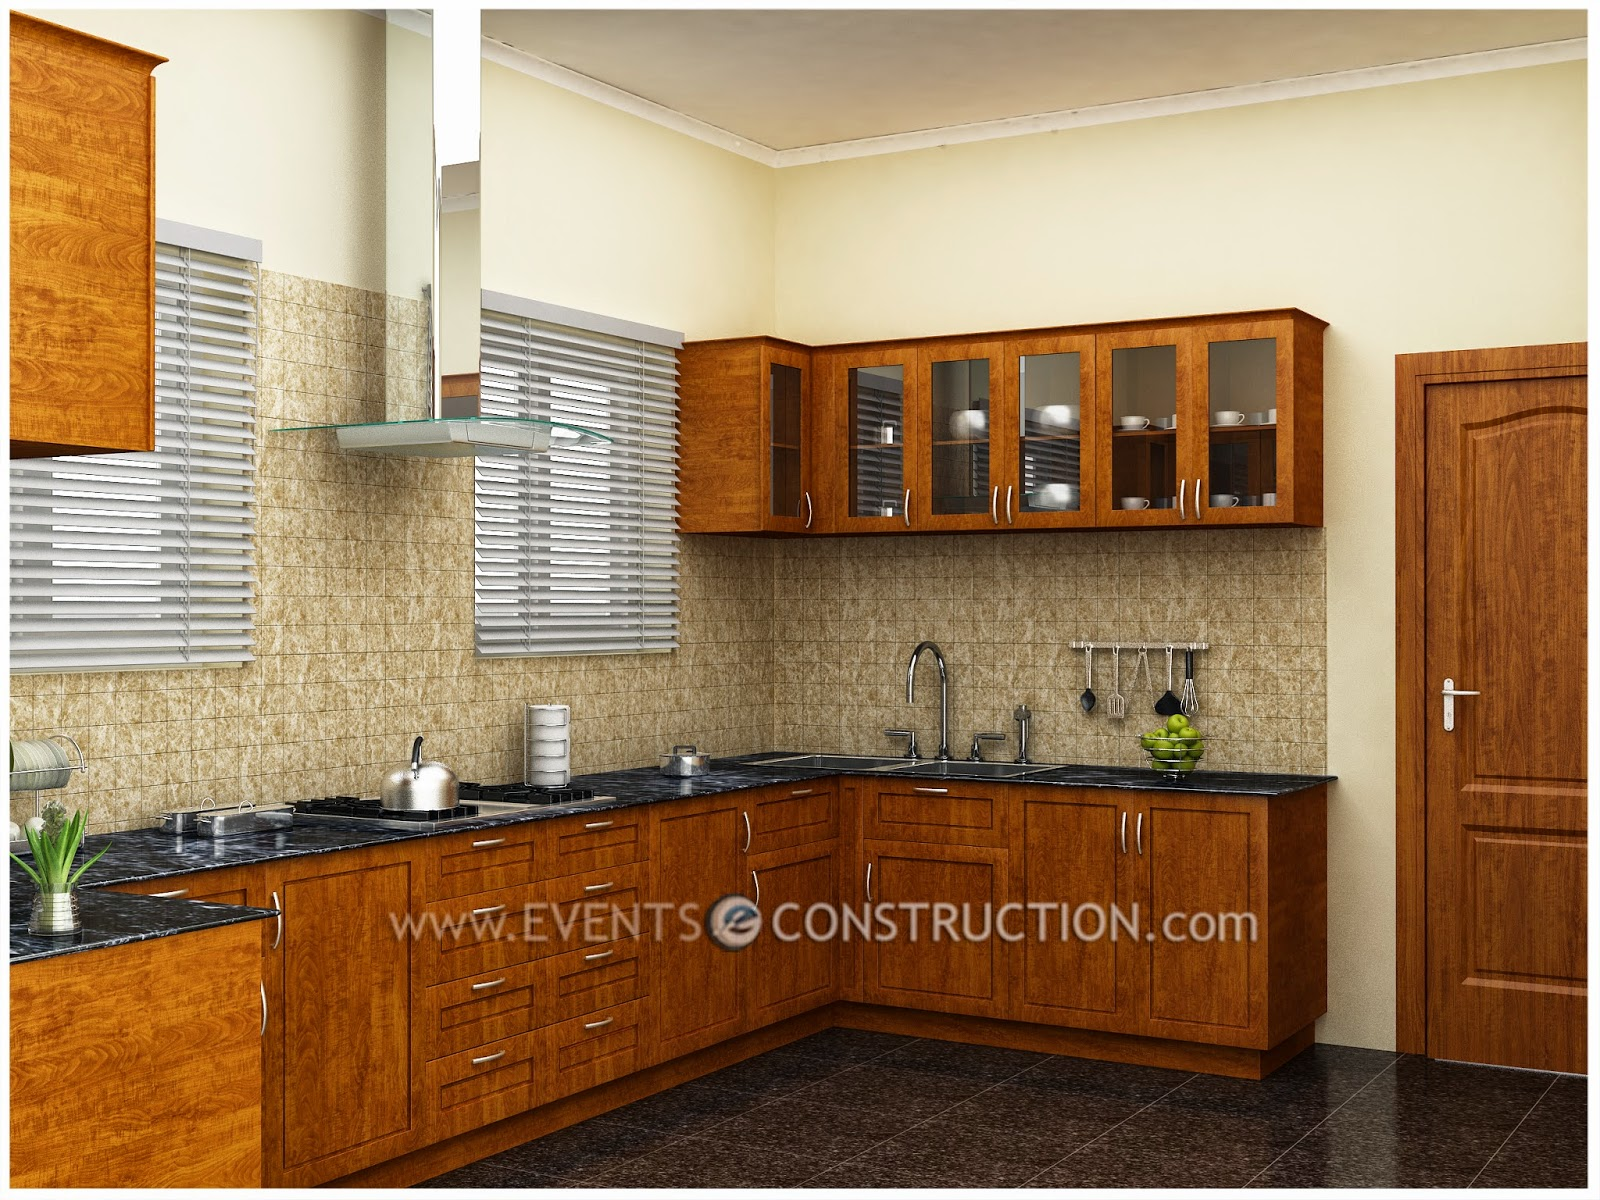 kitchen design kerala evens construction pvt ltd simple kerala kitchen design 343